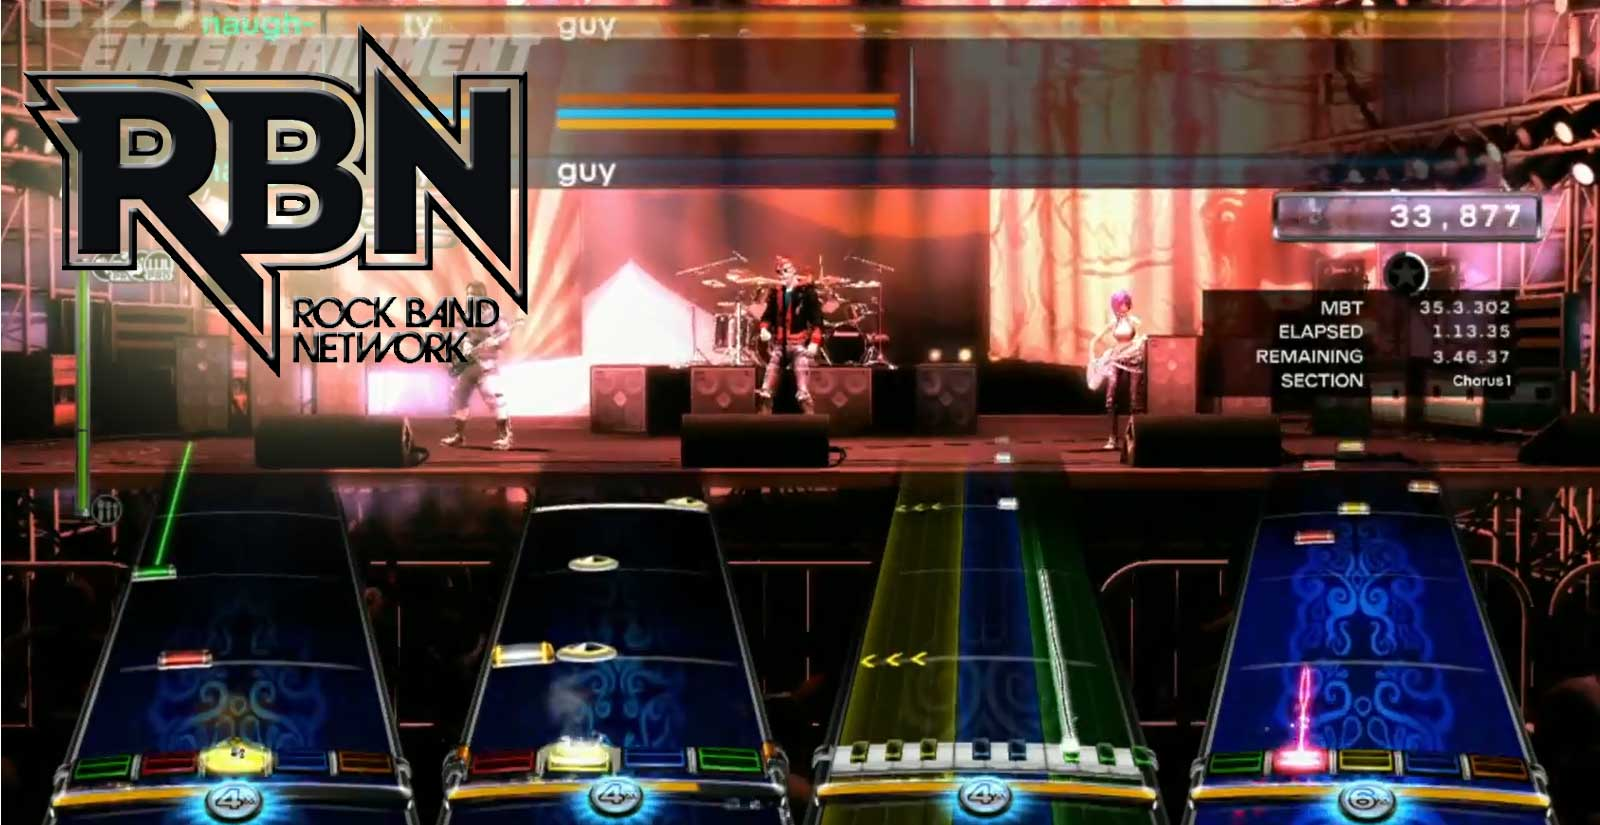 RBN - Rock Band Network Game